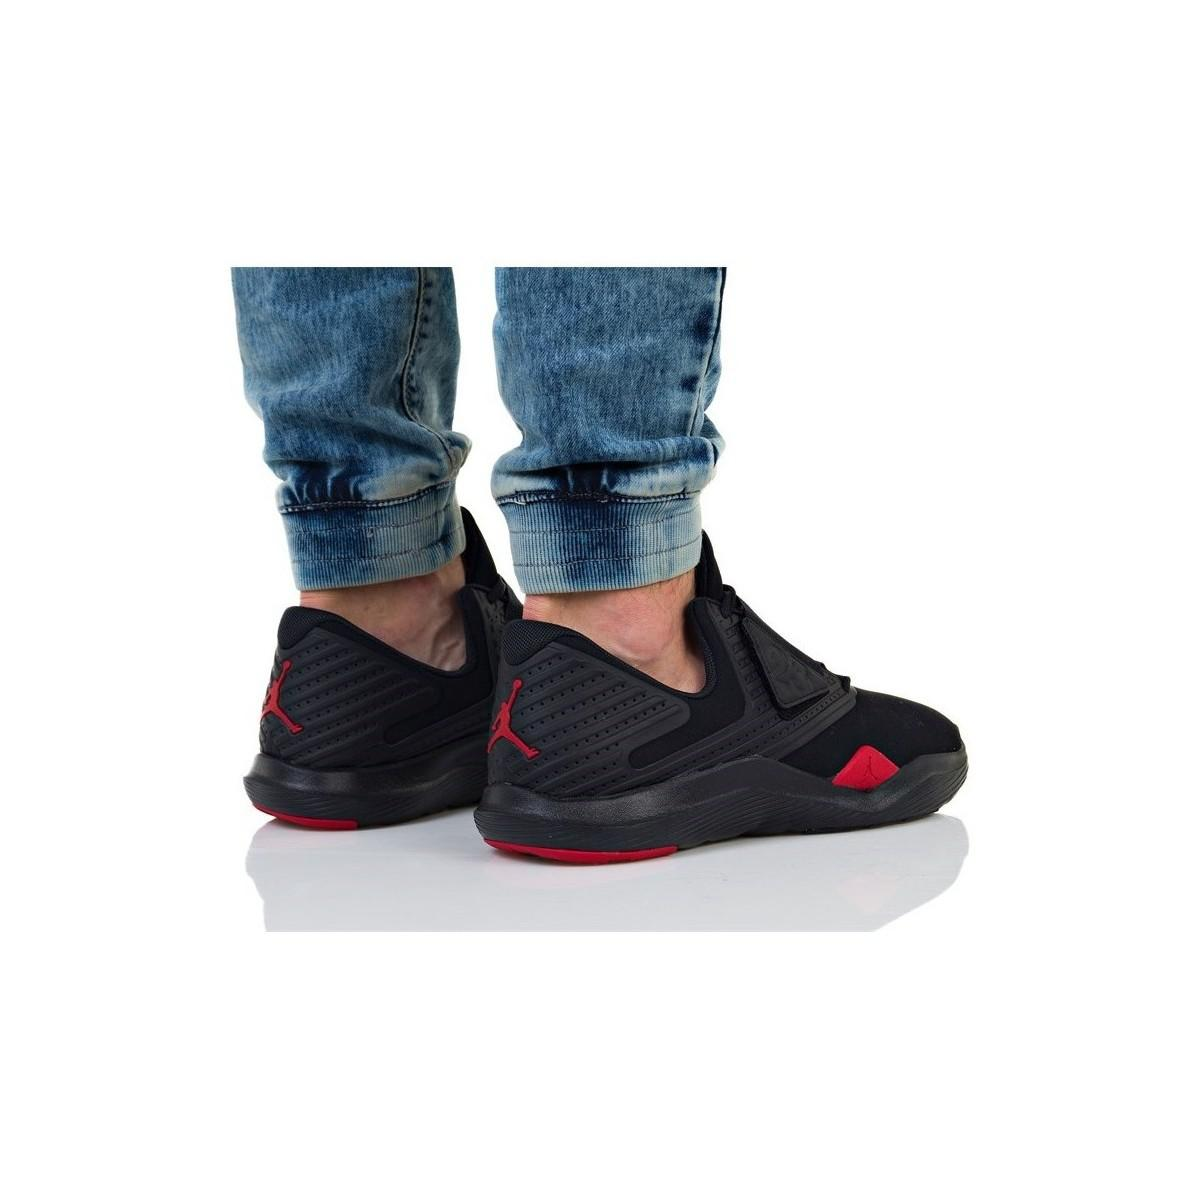 on sale c935a 1c7fa Nike Jordan Relentless Men's Shoes (trainers) In Black in Black for ...